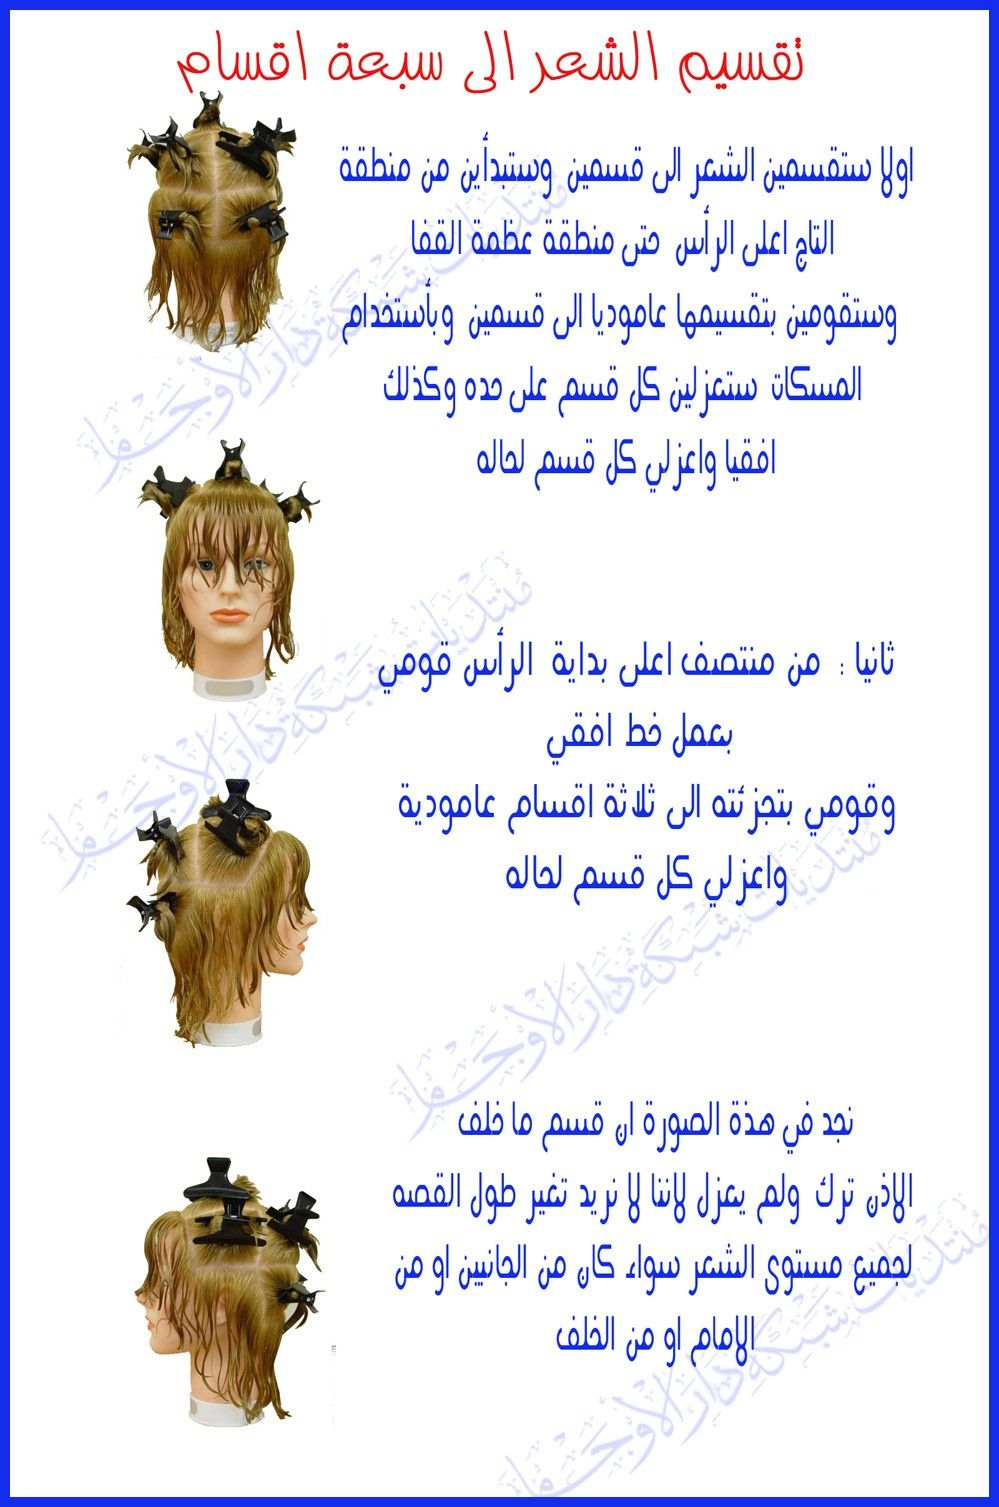 Pin By Farah Fresh On قص الشعر Abia Movie Posters Hair